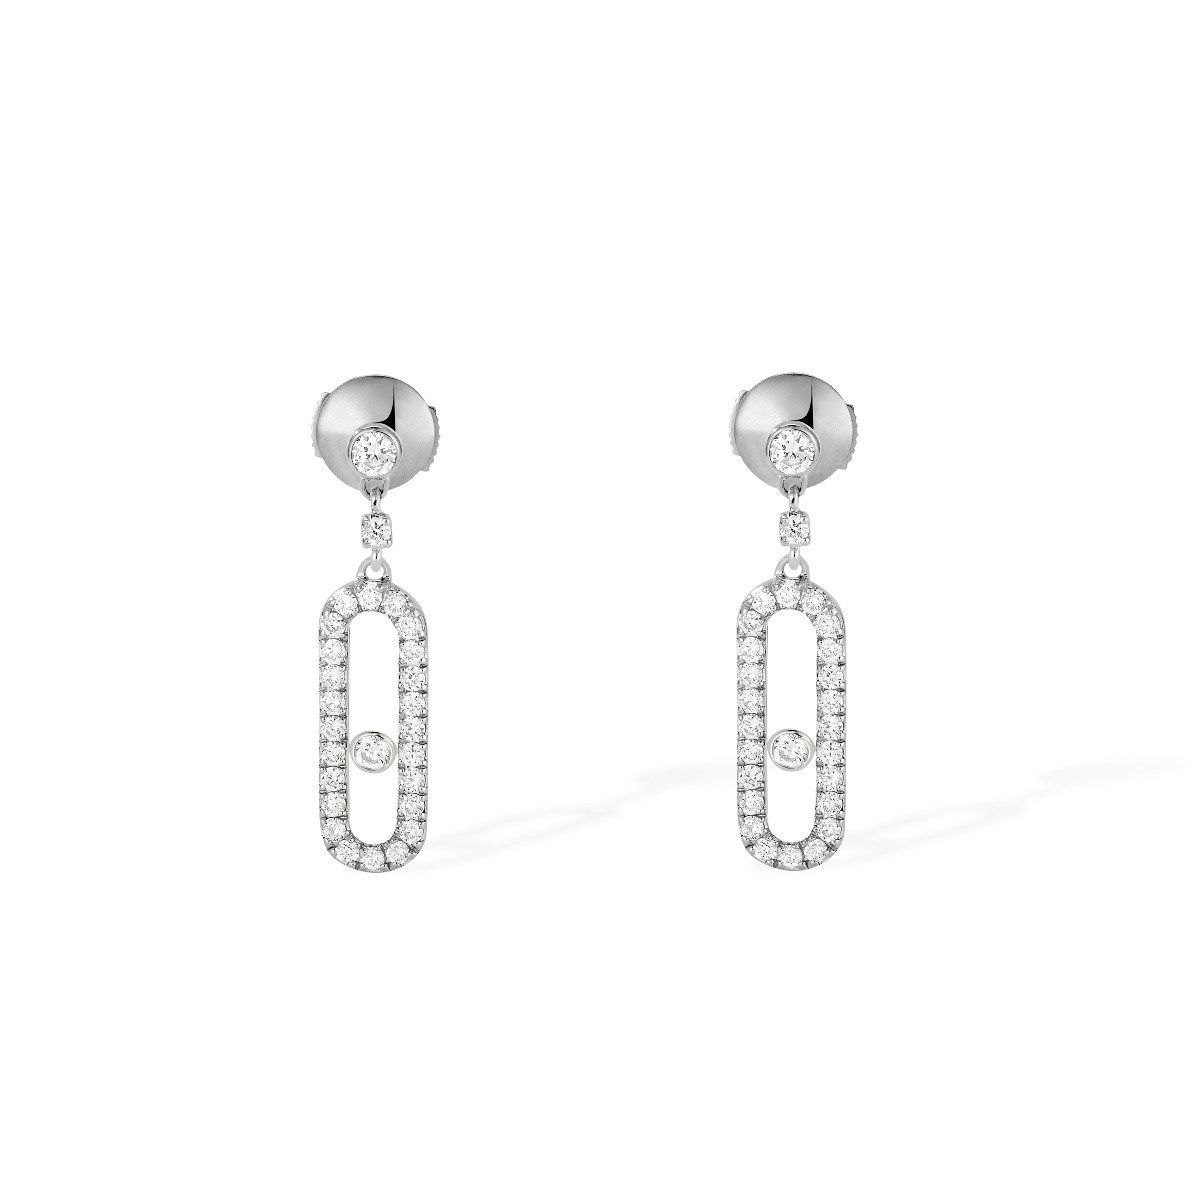 Move Uno Stud Earrings - White Gold